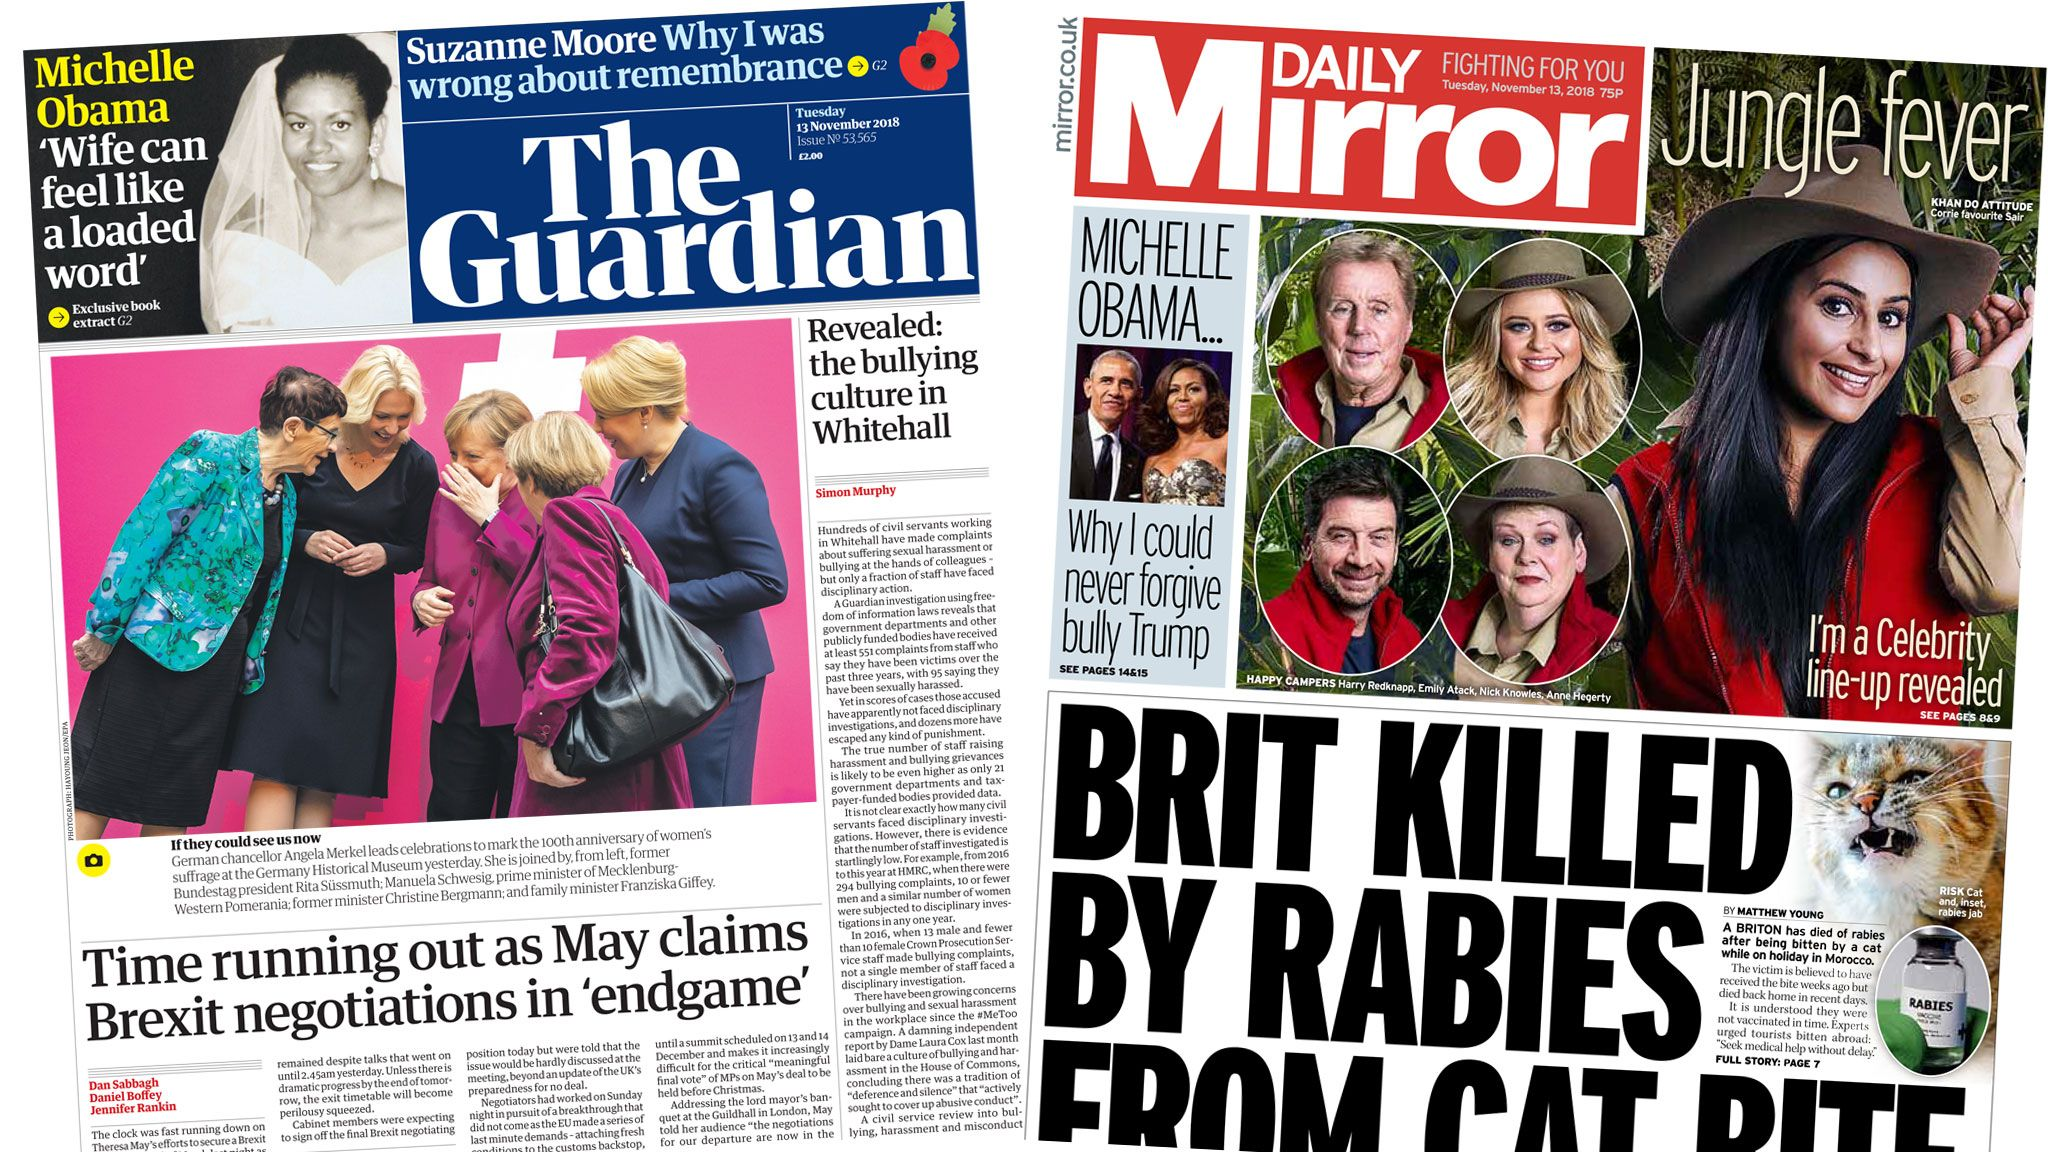 The Guardian and Daily Mirror